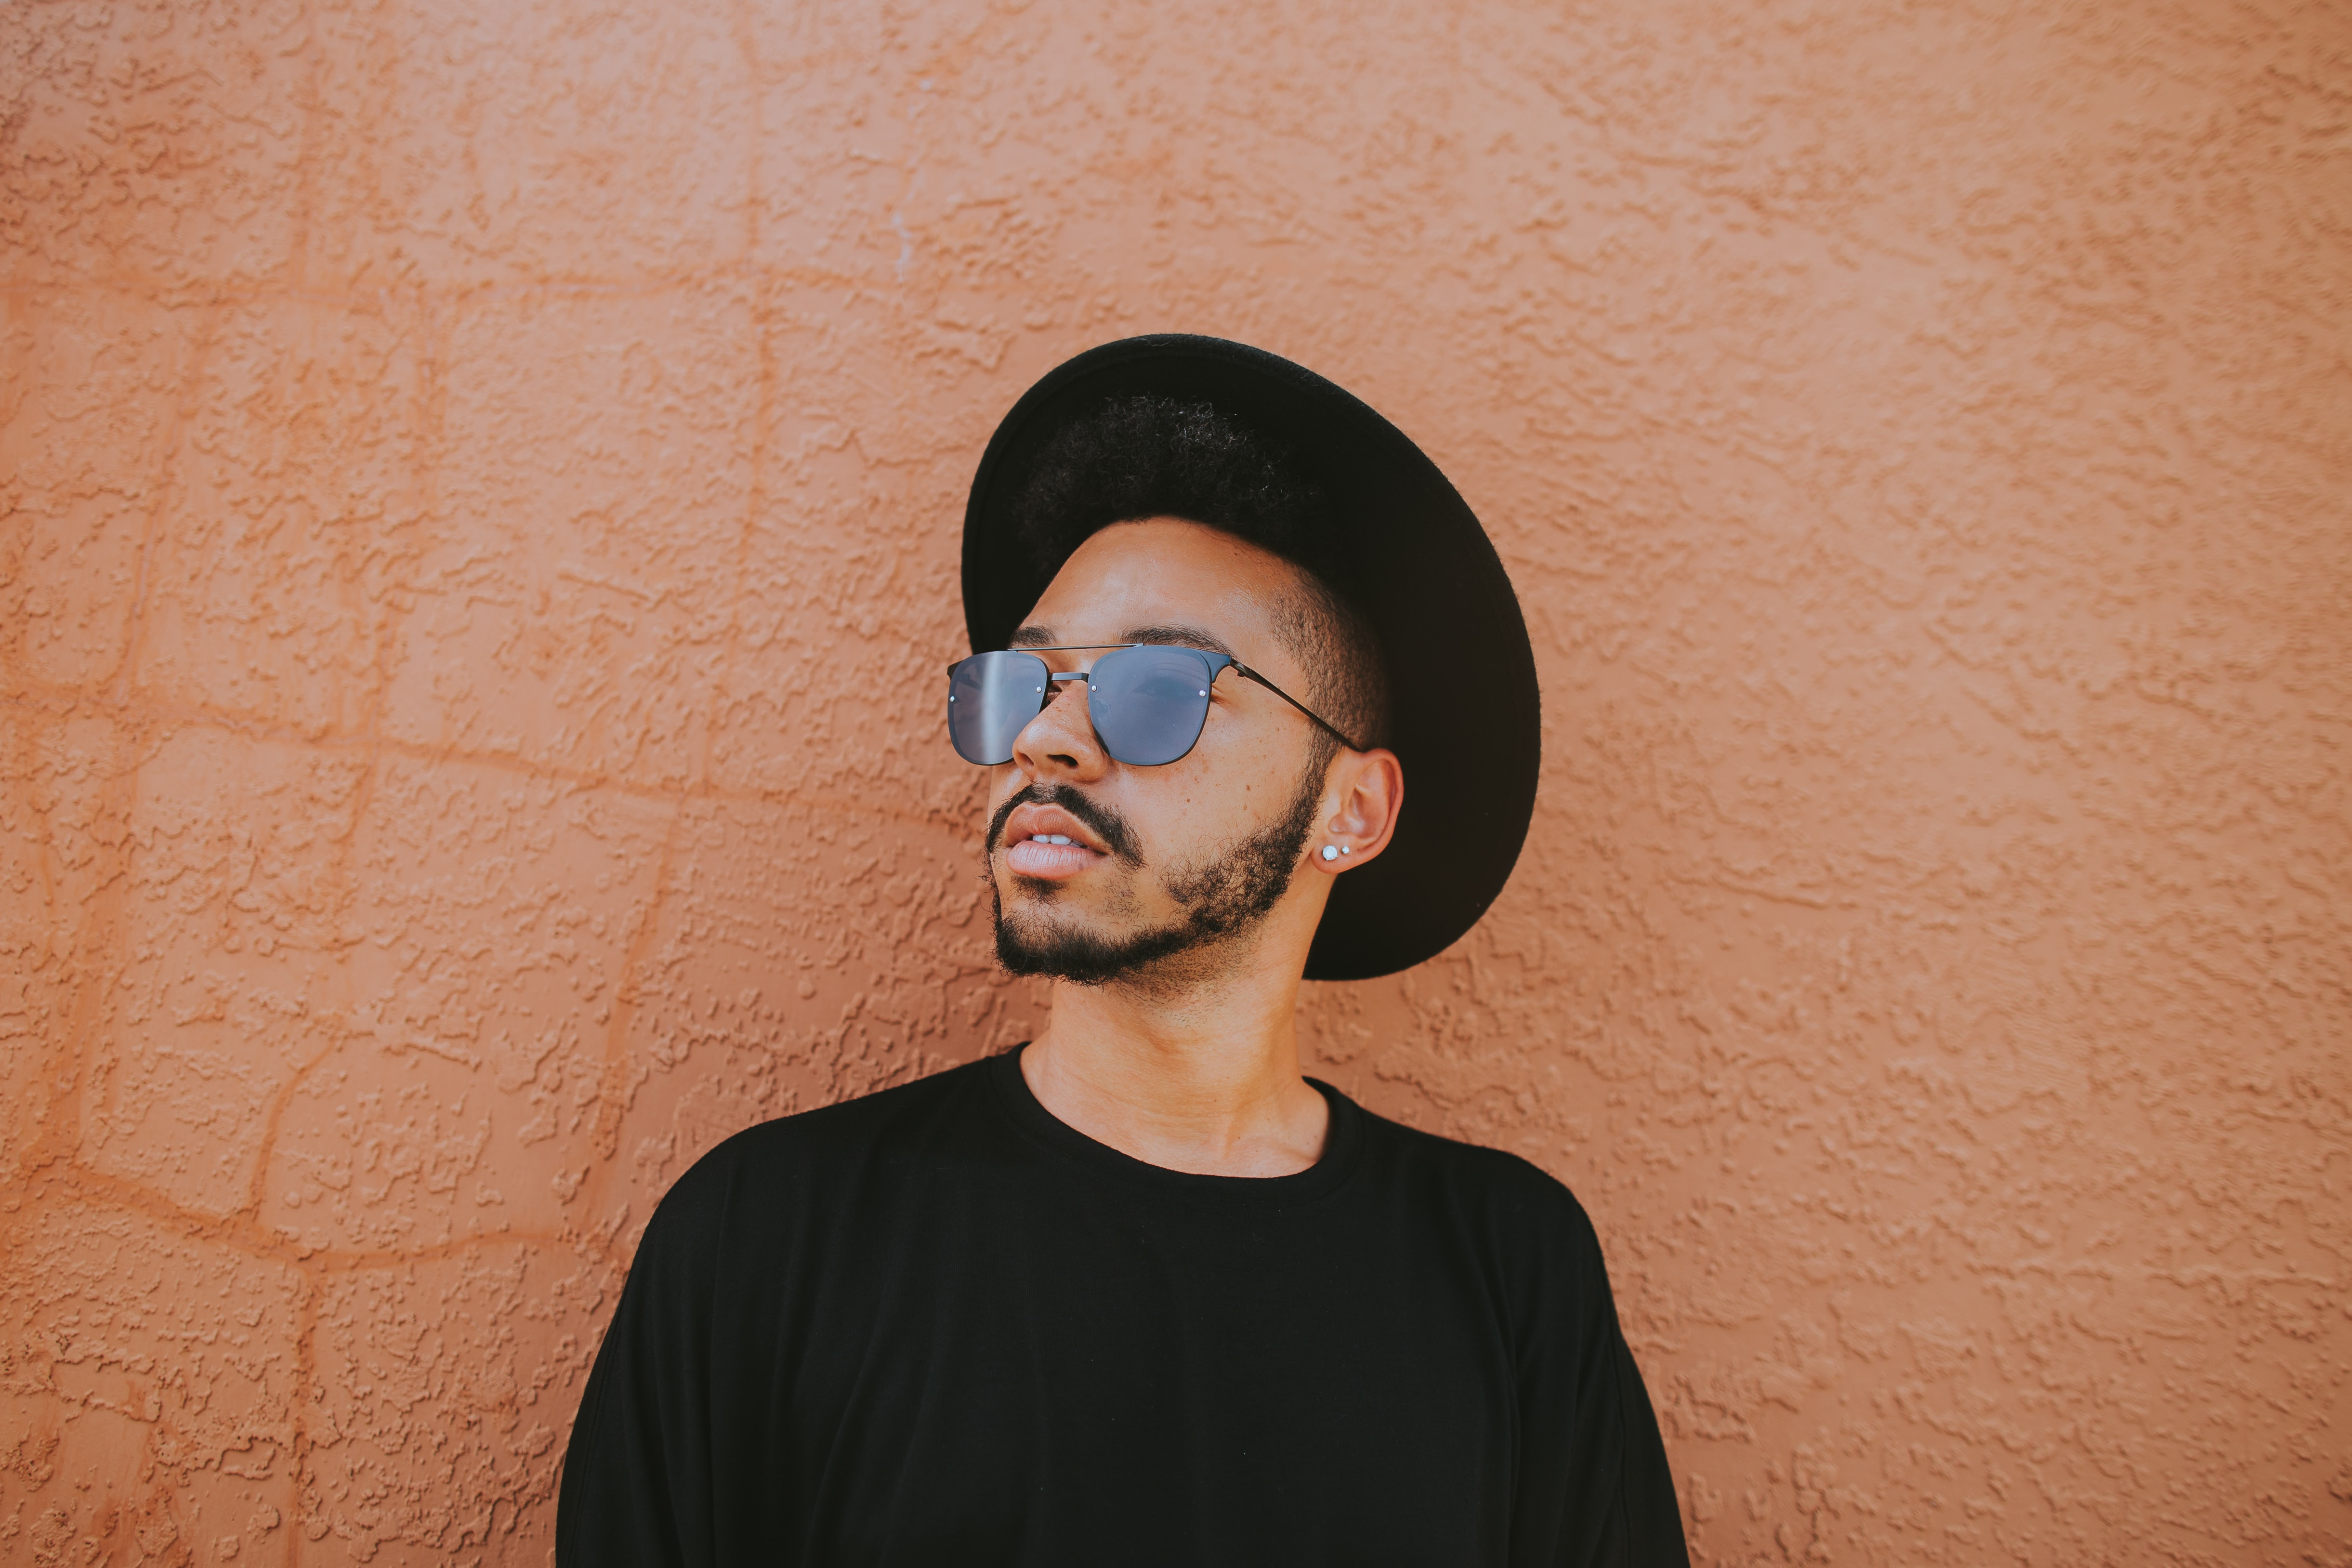 A man in a black hat and sunglasses standing next to an orange wall